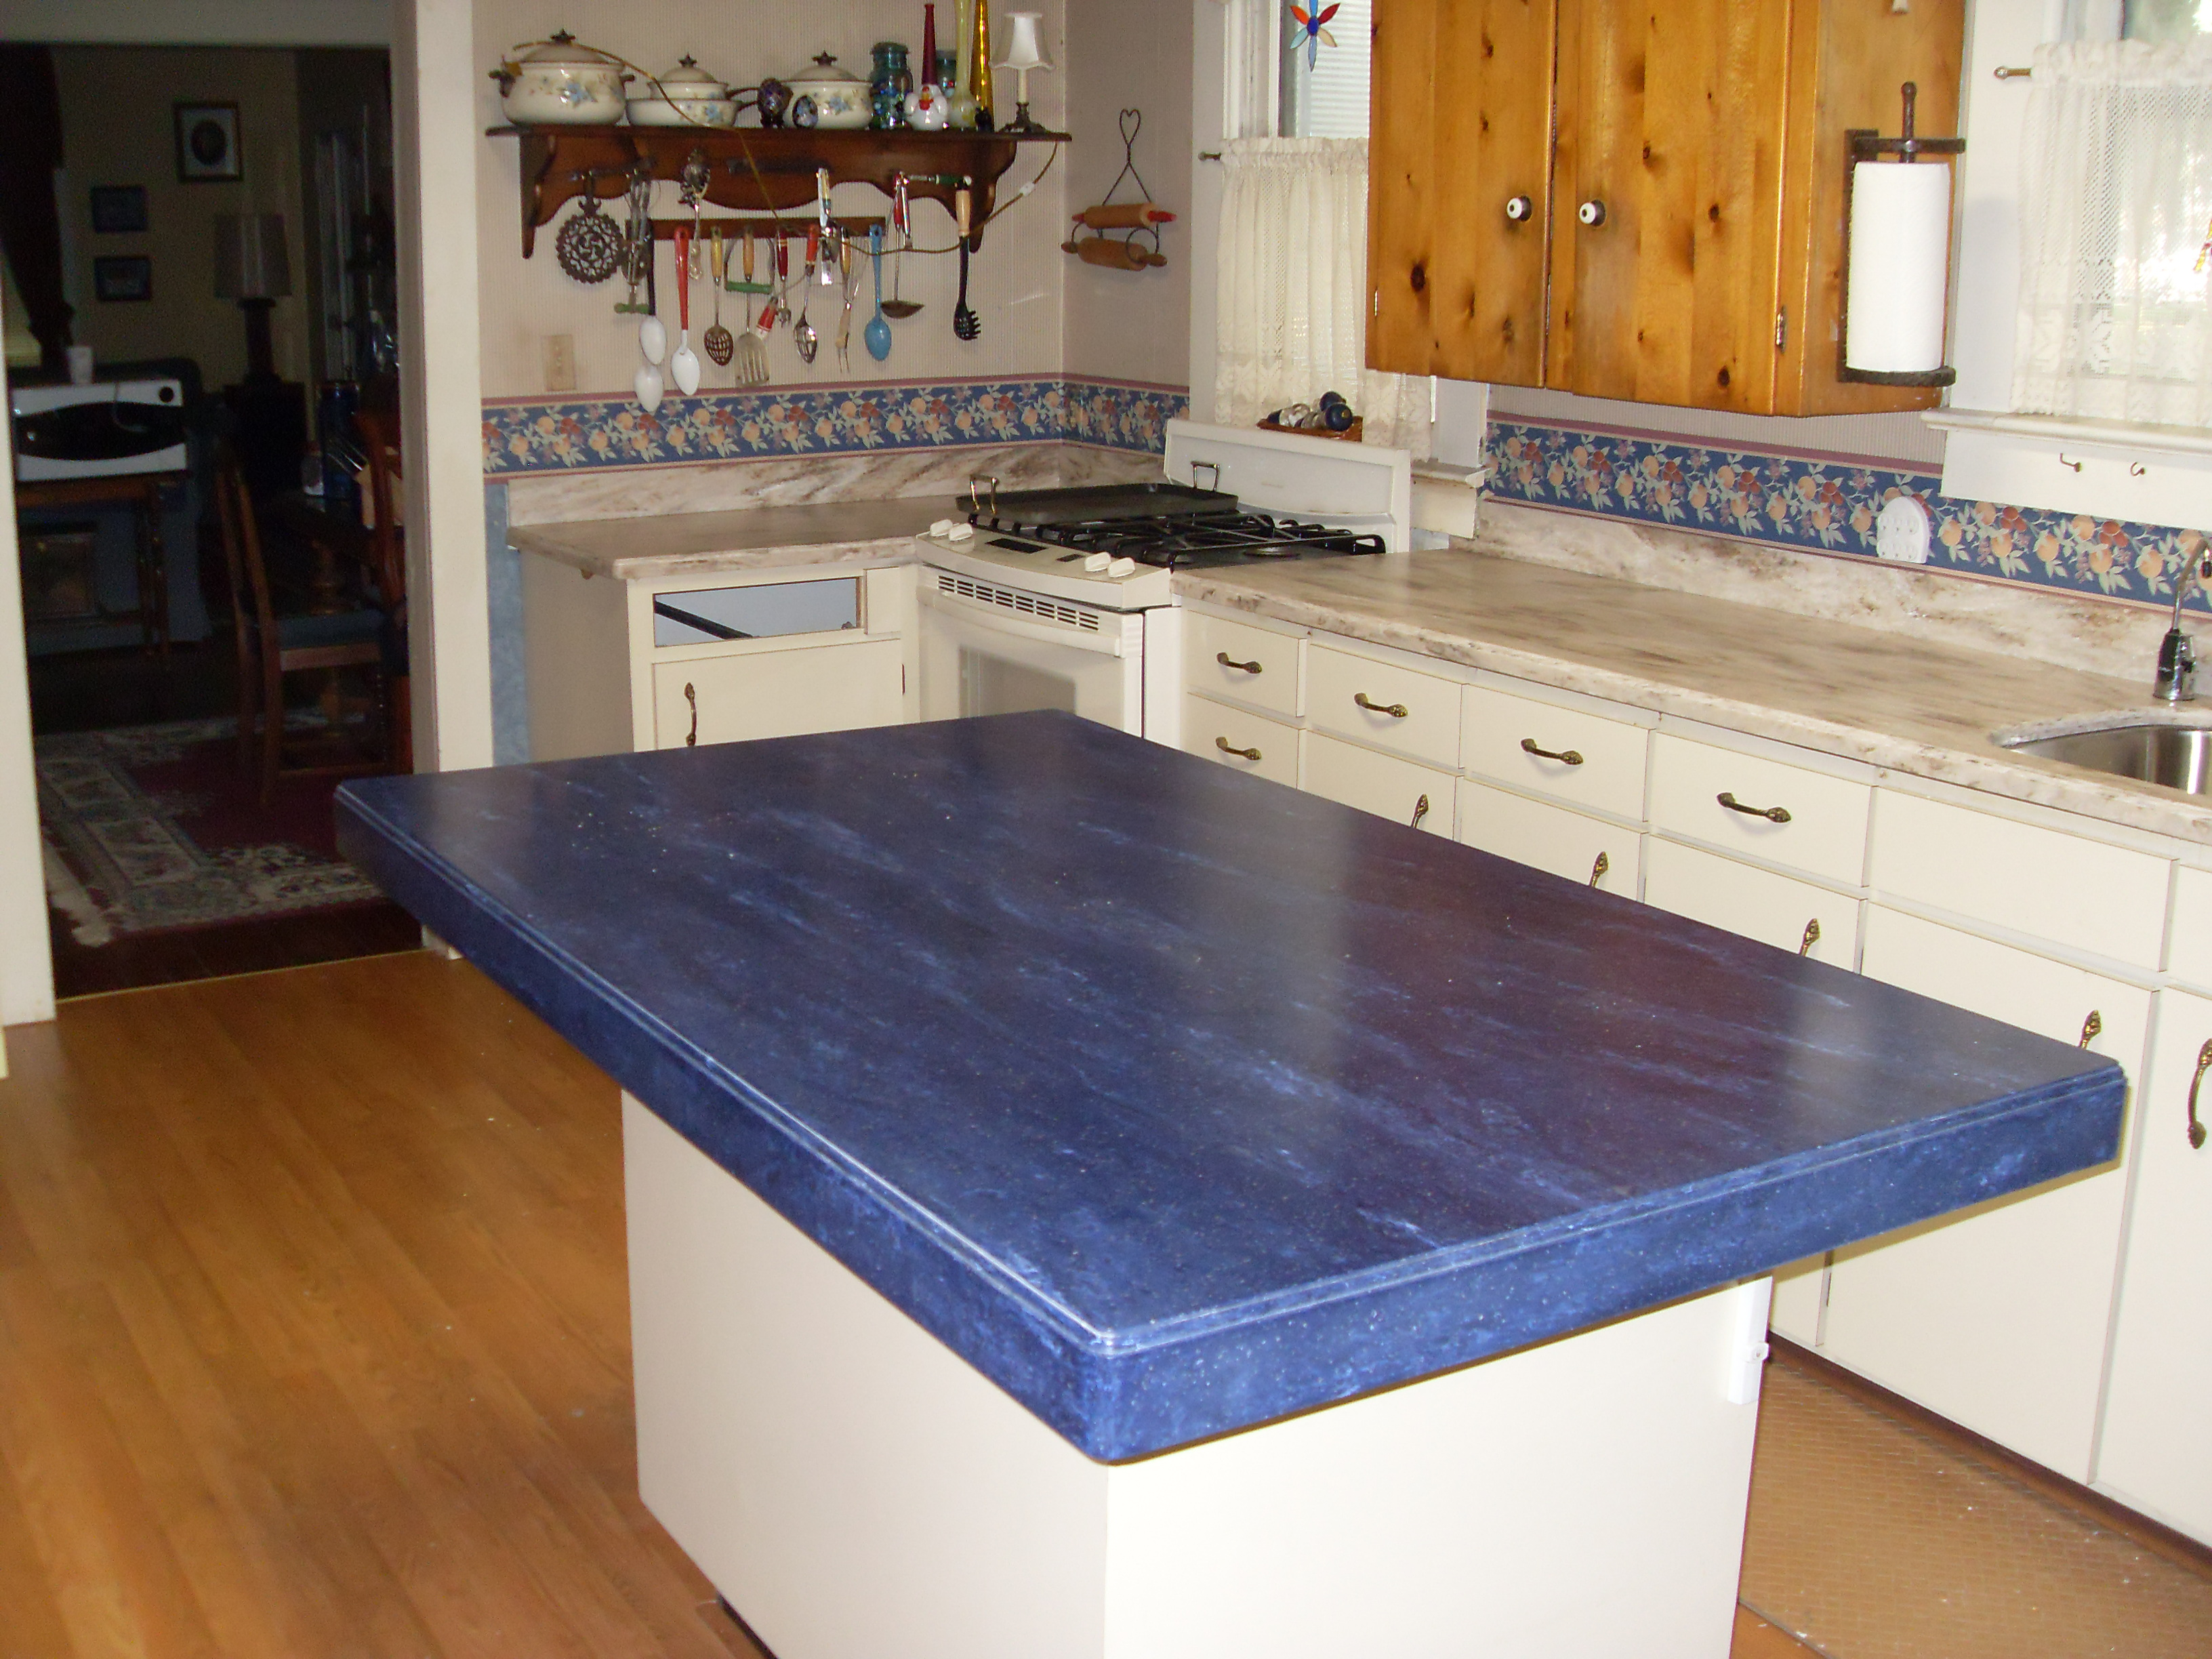 marvelous adorable clean model how countertops architecture dupont cleaning corian designs